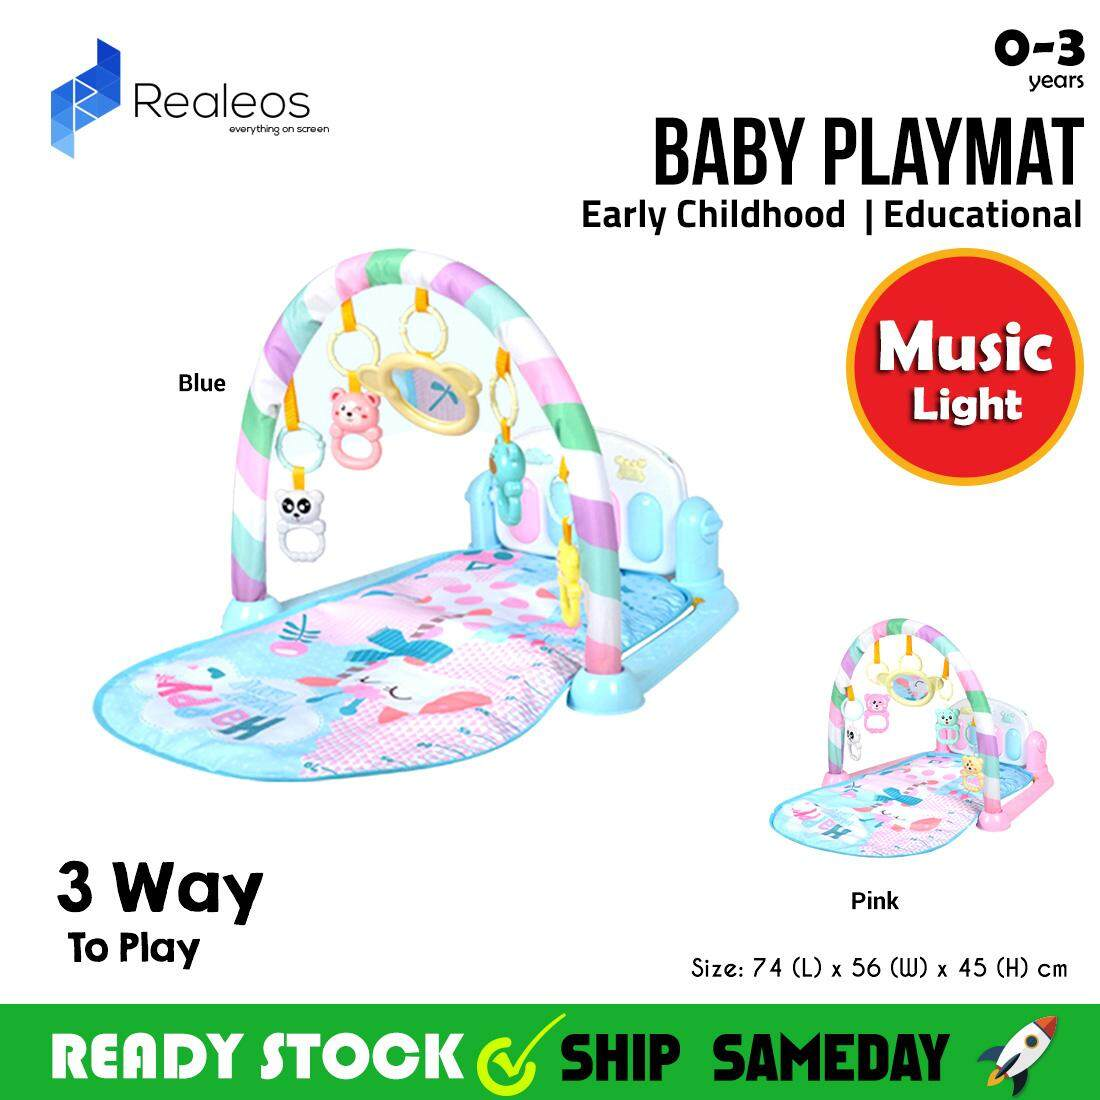 How To Play Newborn On Piano Realeos Baby Kick Play Playmat Playgym Piano Newborn Toy Music R884 Baby Toys